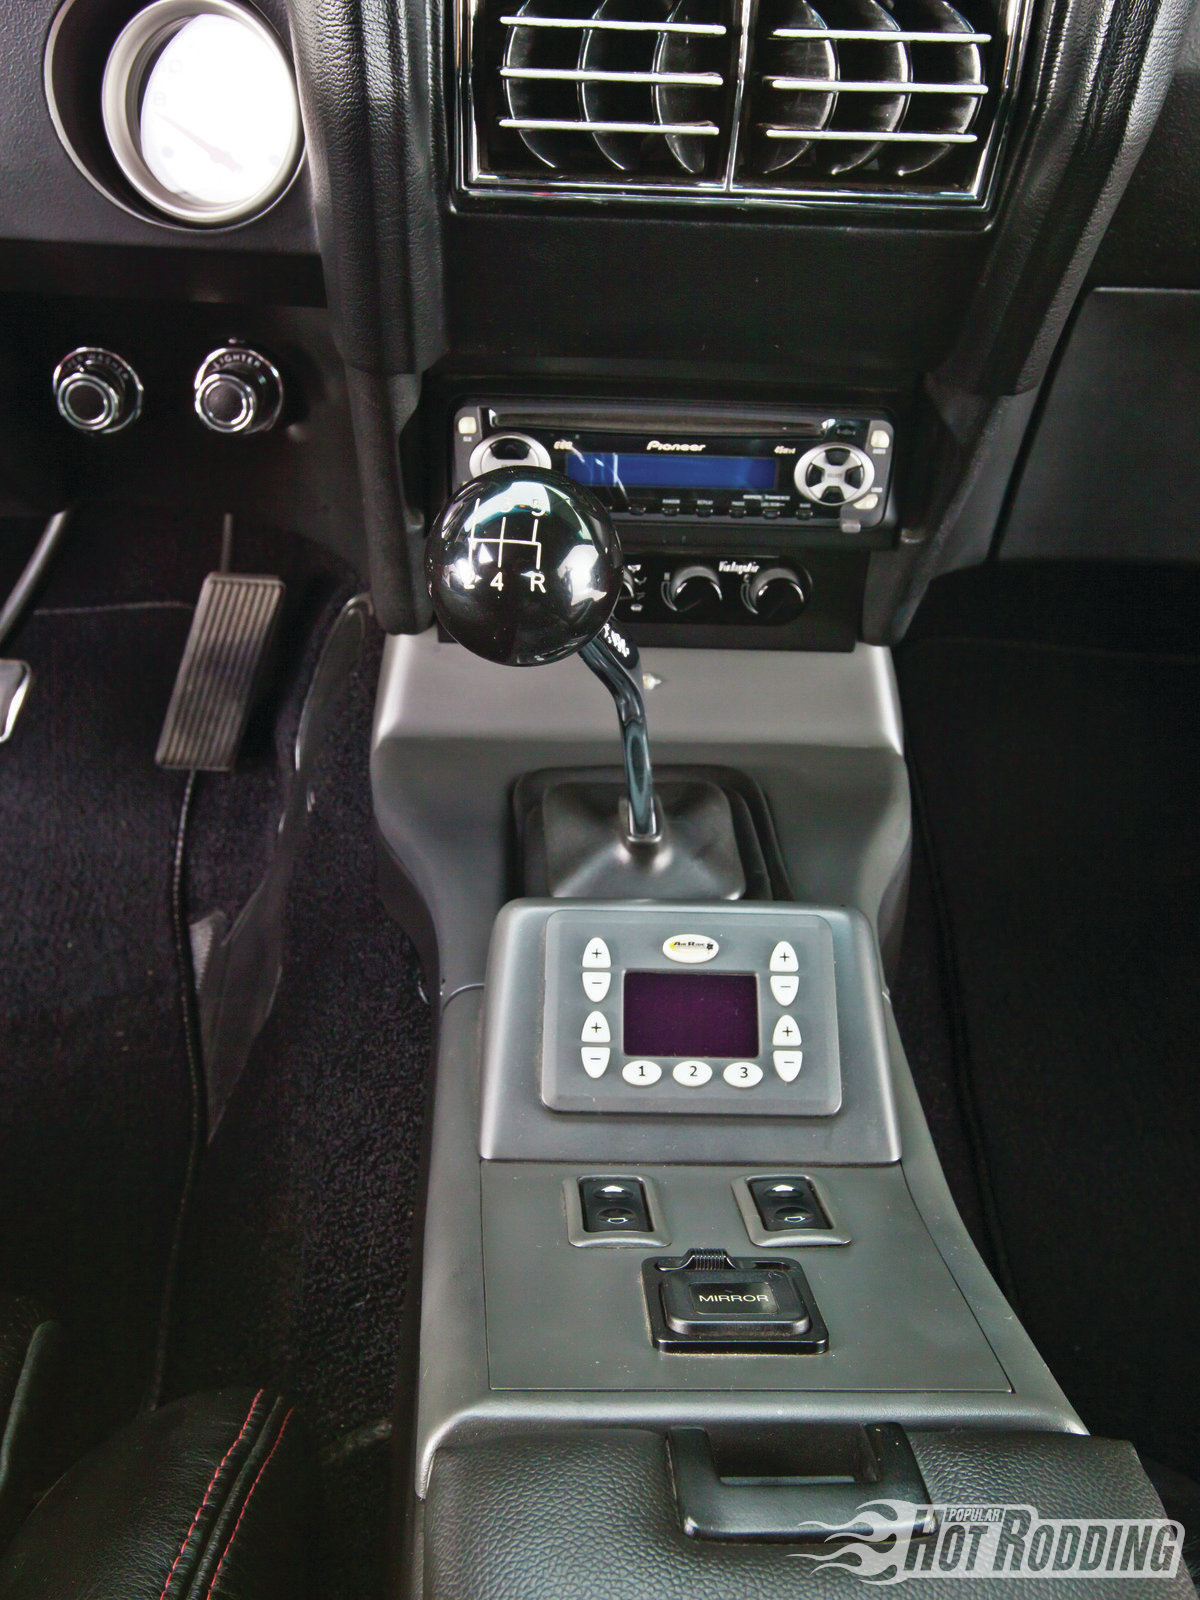 The scavenged center console houses the RideTech digital control, Vintage Air Control, power window switches, and power mirror switches. Guy used Acura mirror servos and LEDs in the original mirror housing to create power mirrors with integrated turn signals.